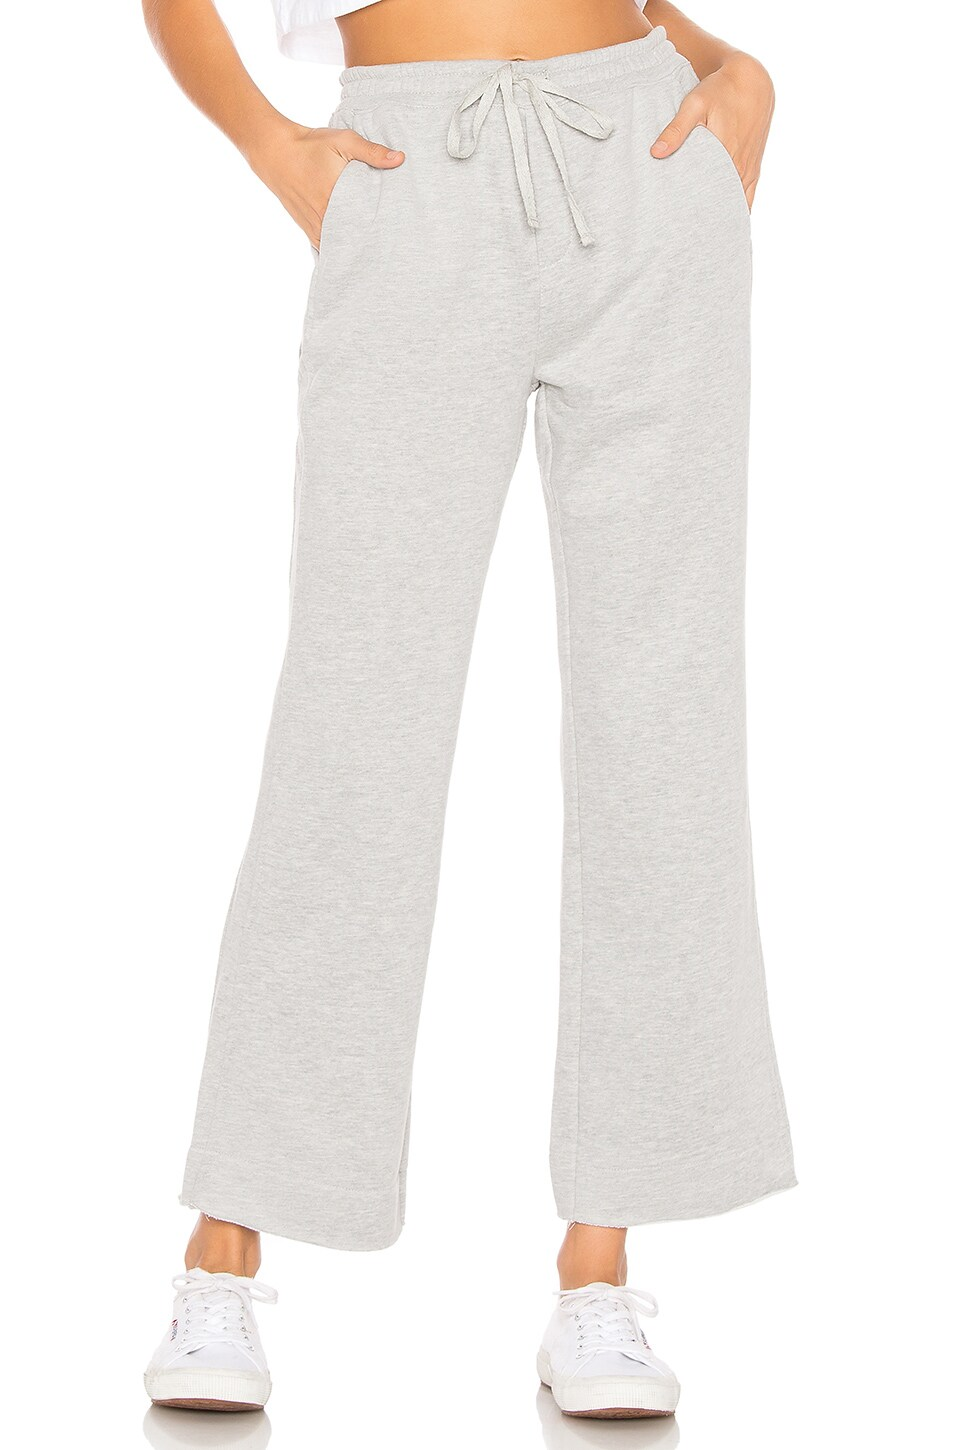 Tularosa Evie Sweatpants in Heather Grey